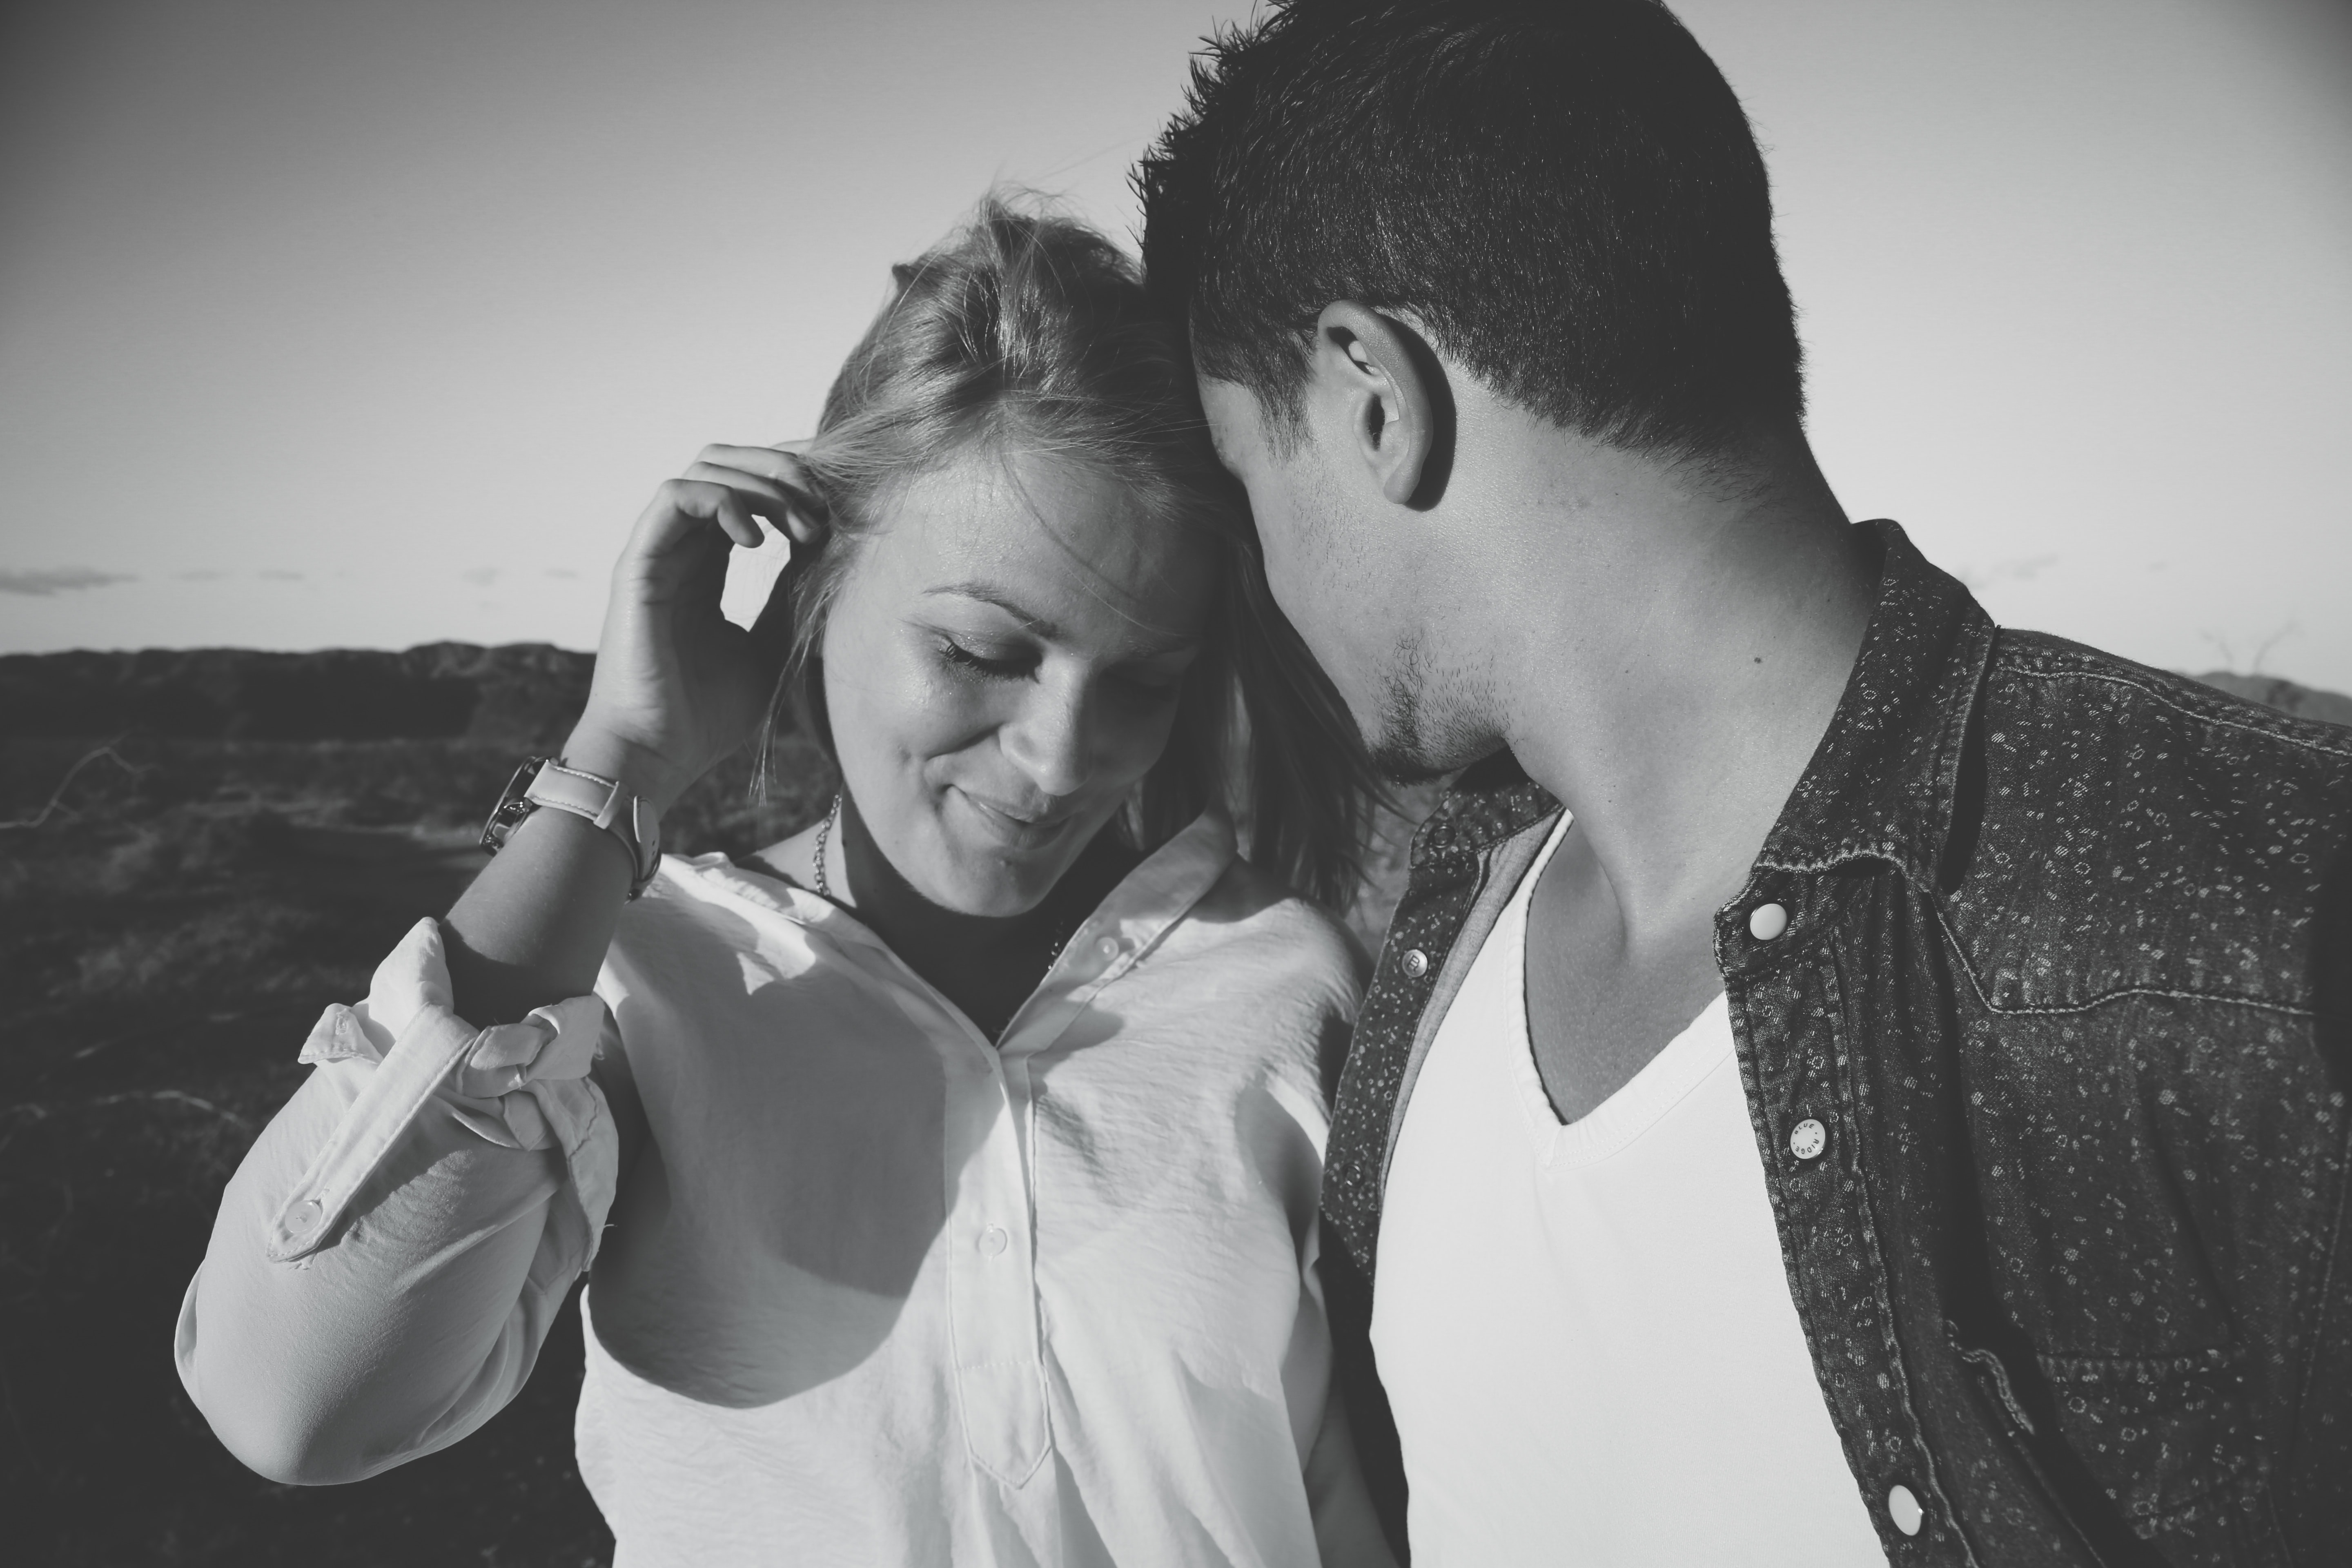 grayscale photography of man and woman